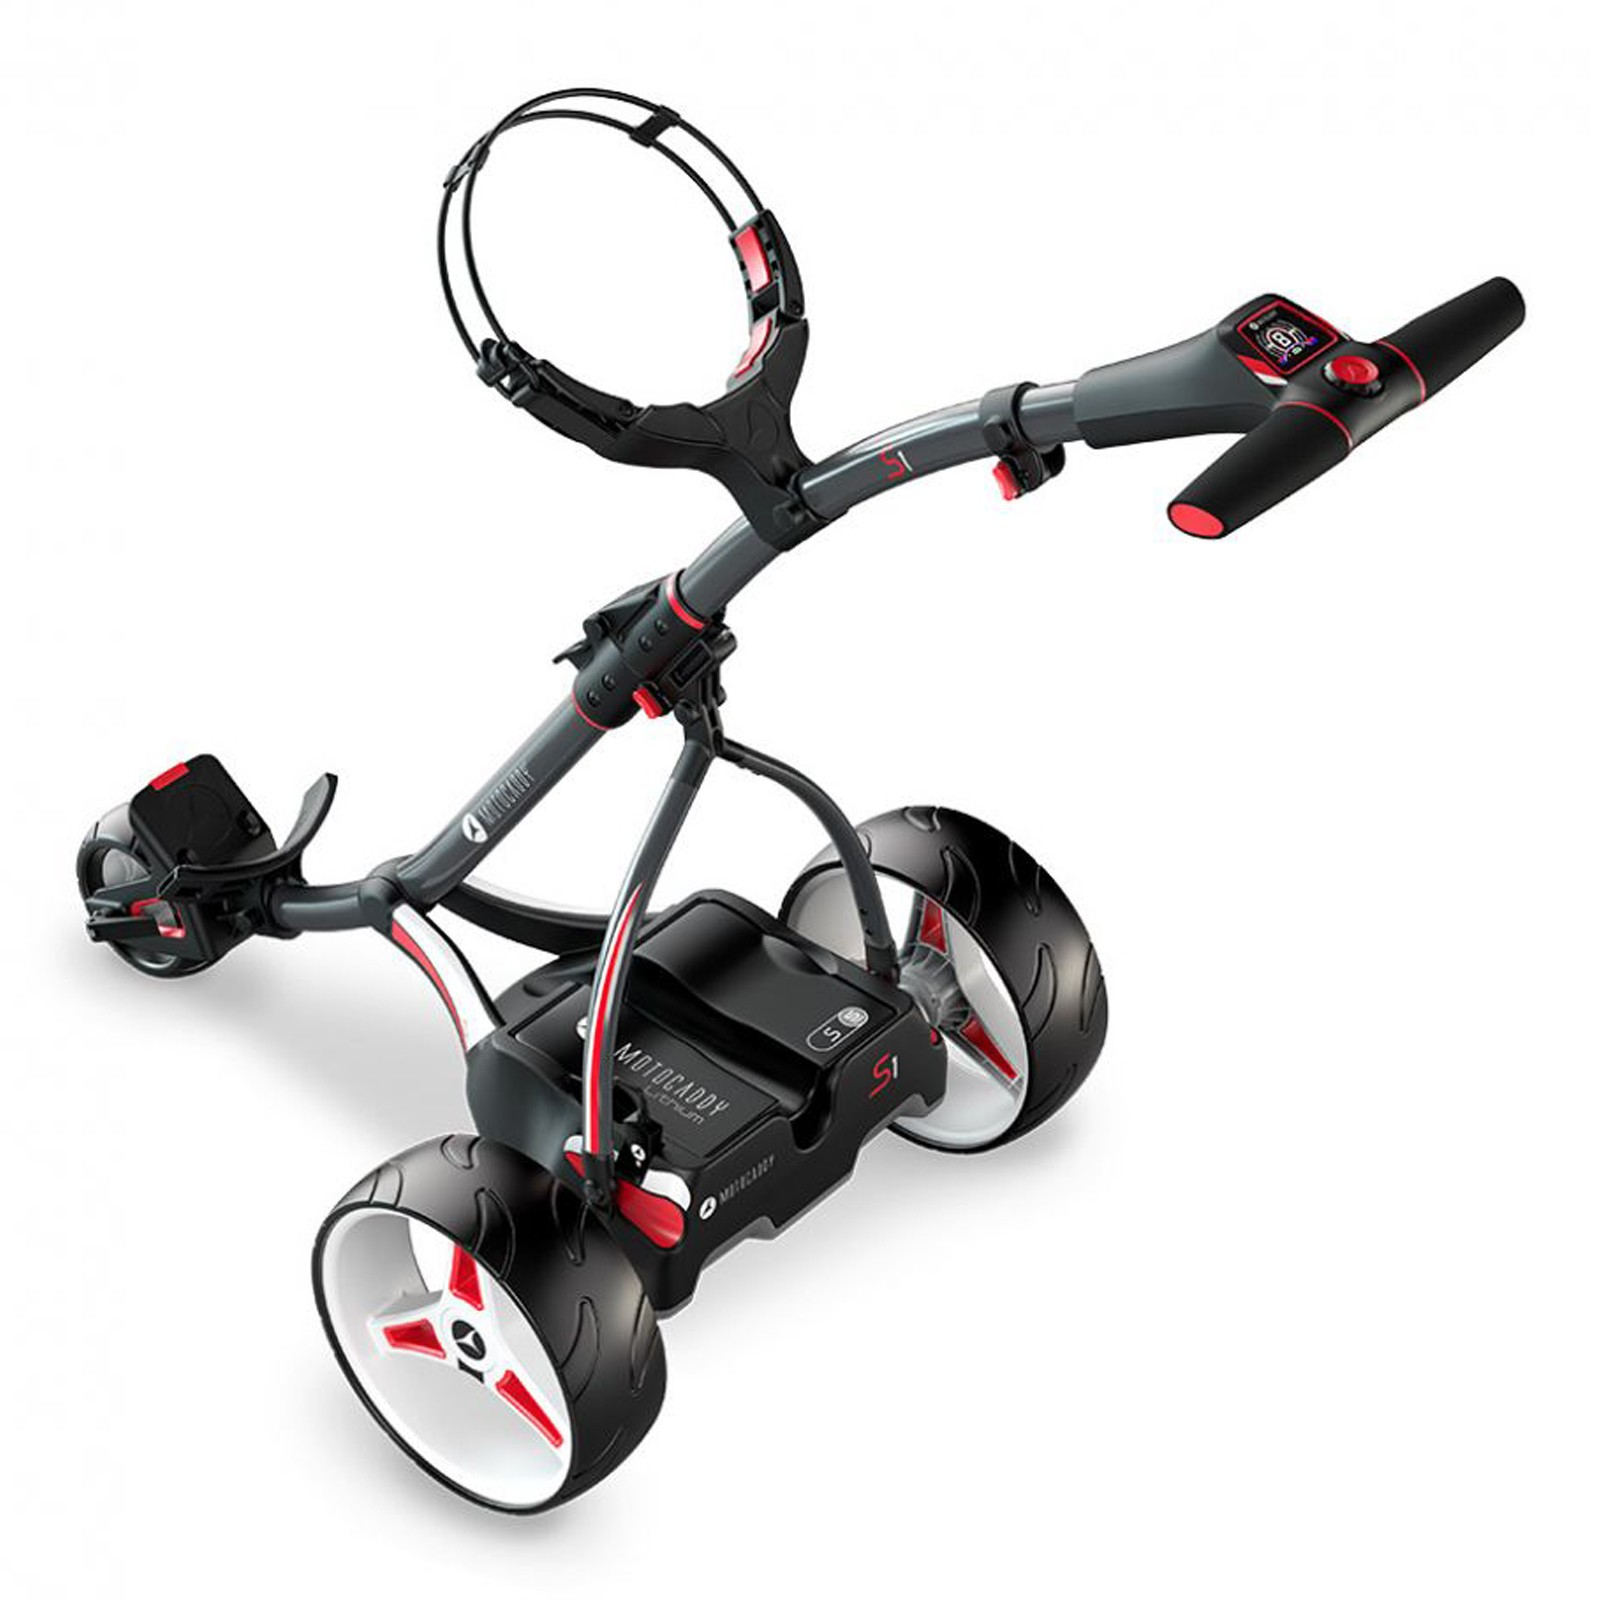 Motocaddy S1 Digital Electric Golf Trolleys - (18 Hole Lithium Battery)